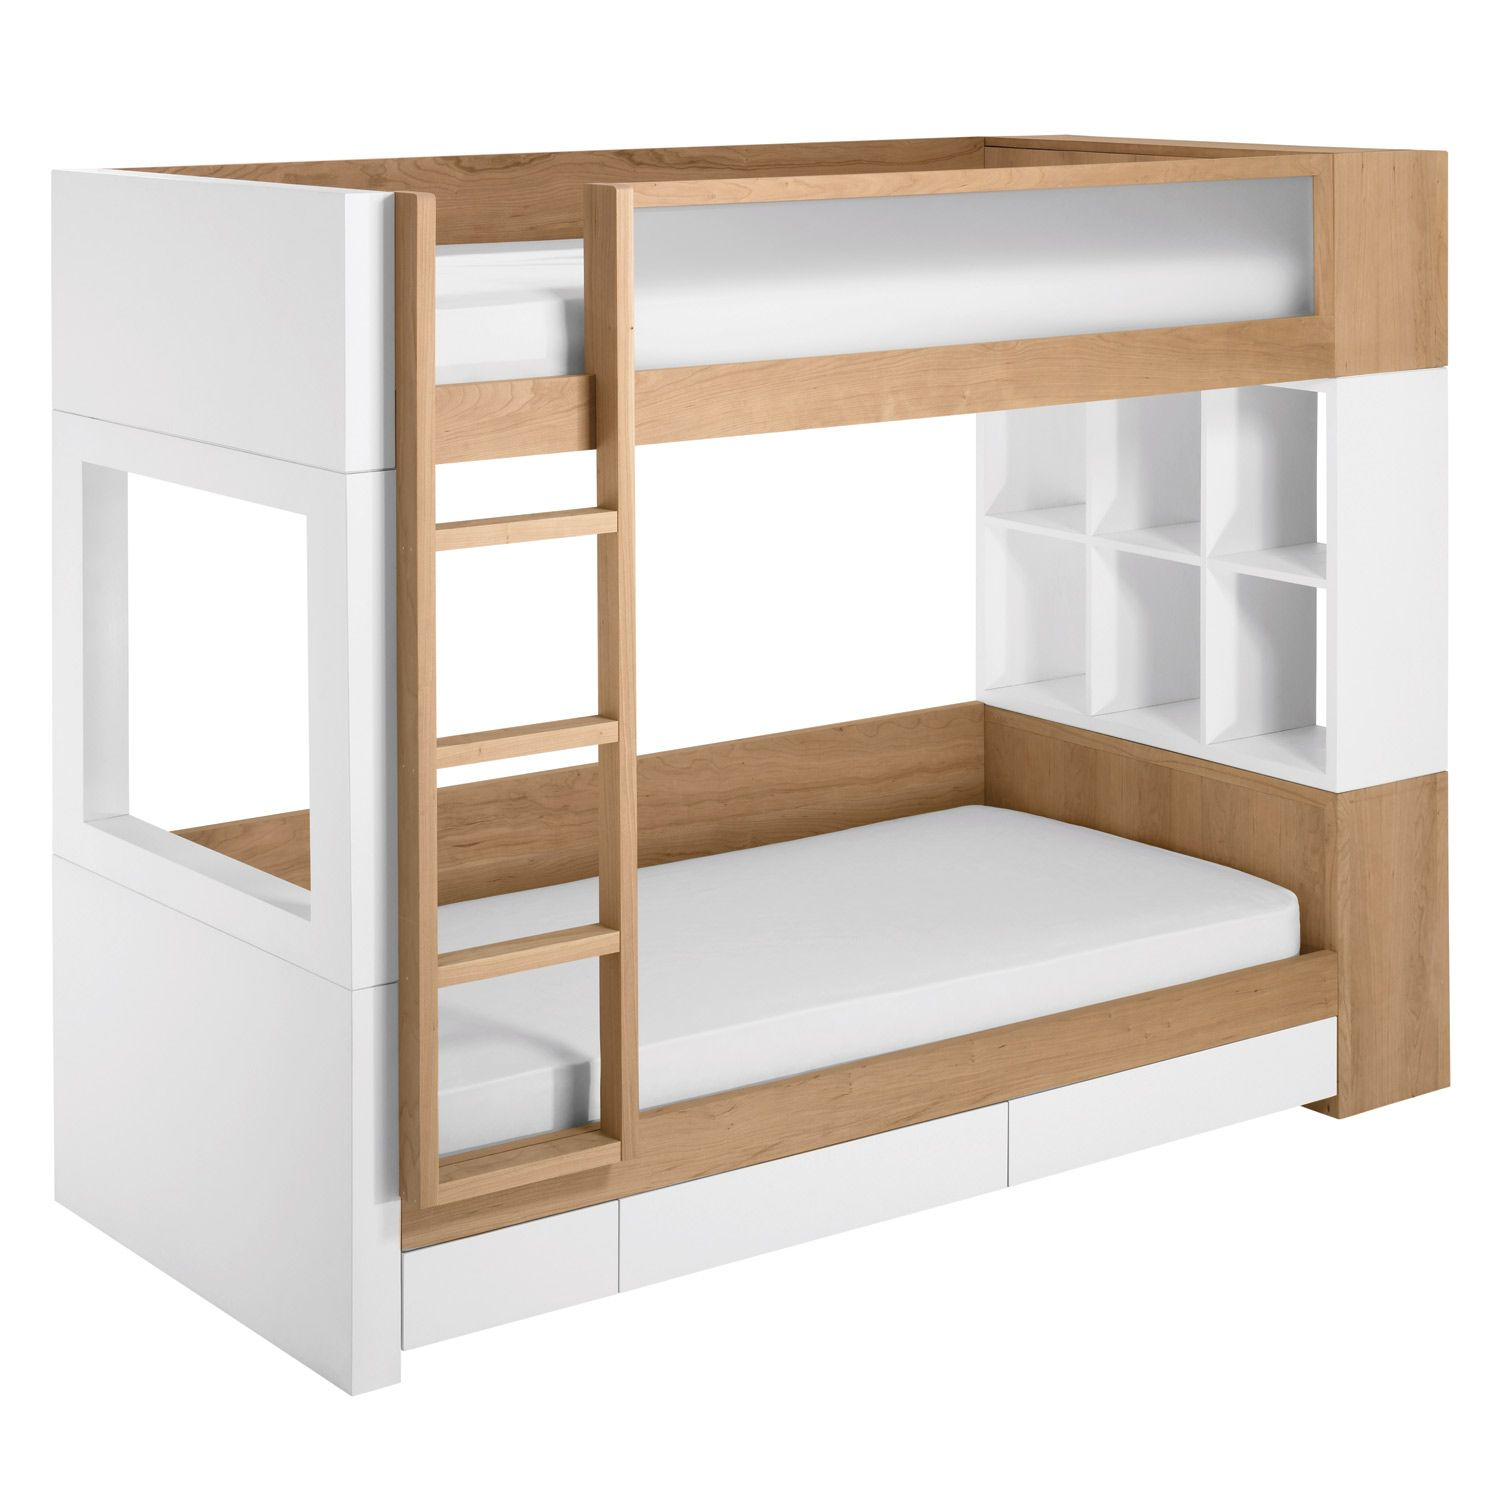 Kids Bunk Beds Children S Bunk Beds Twin Bunk Beds Layla Grayce